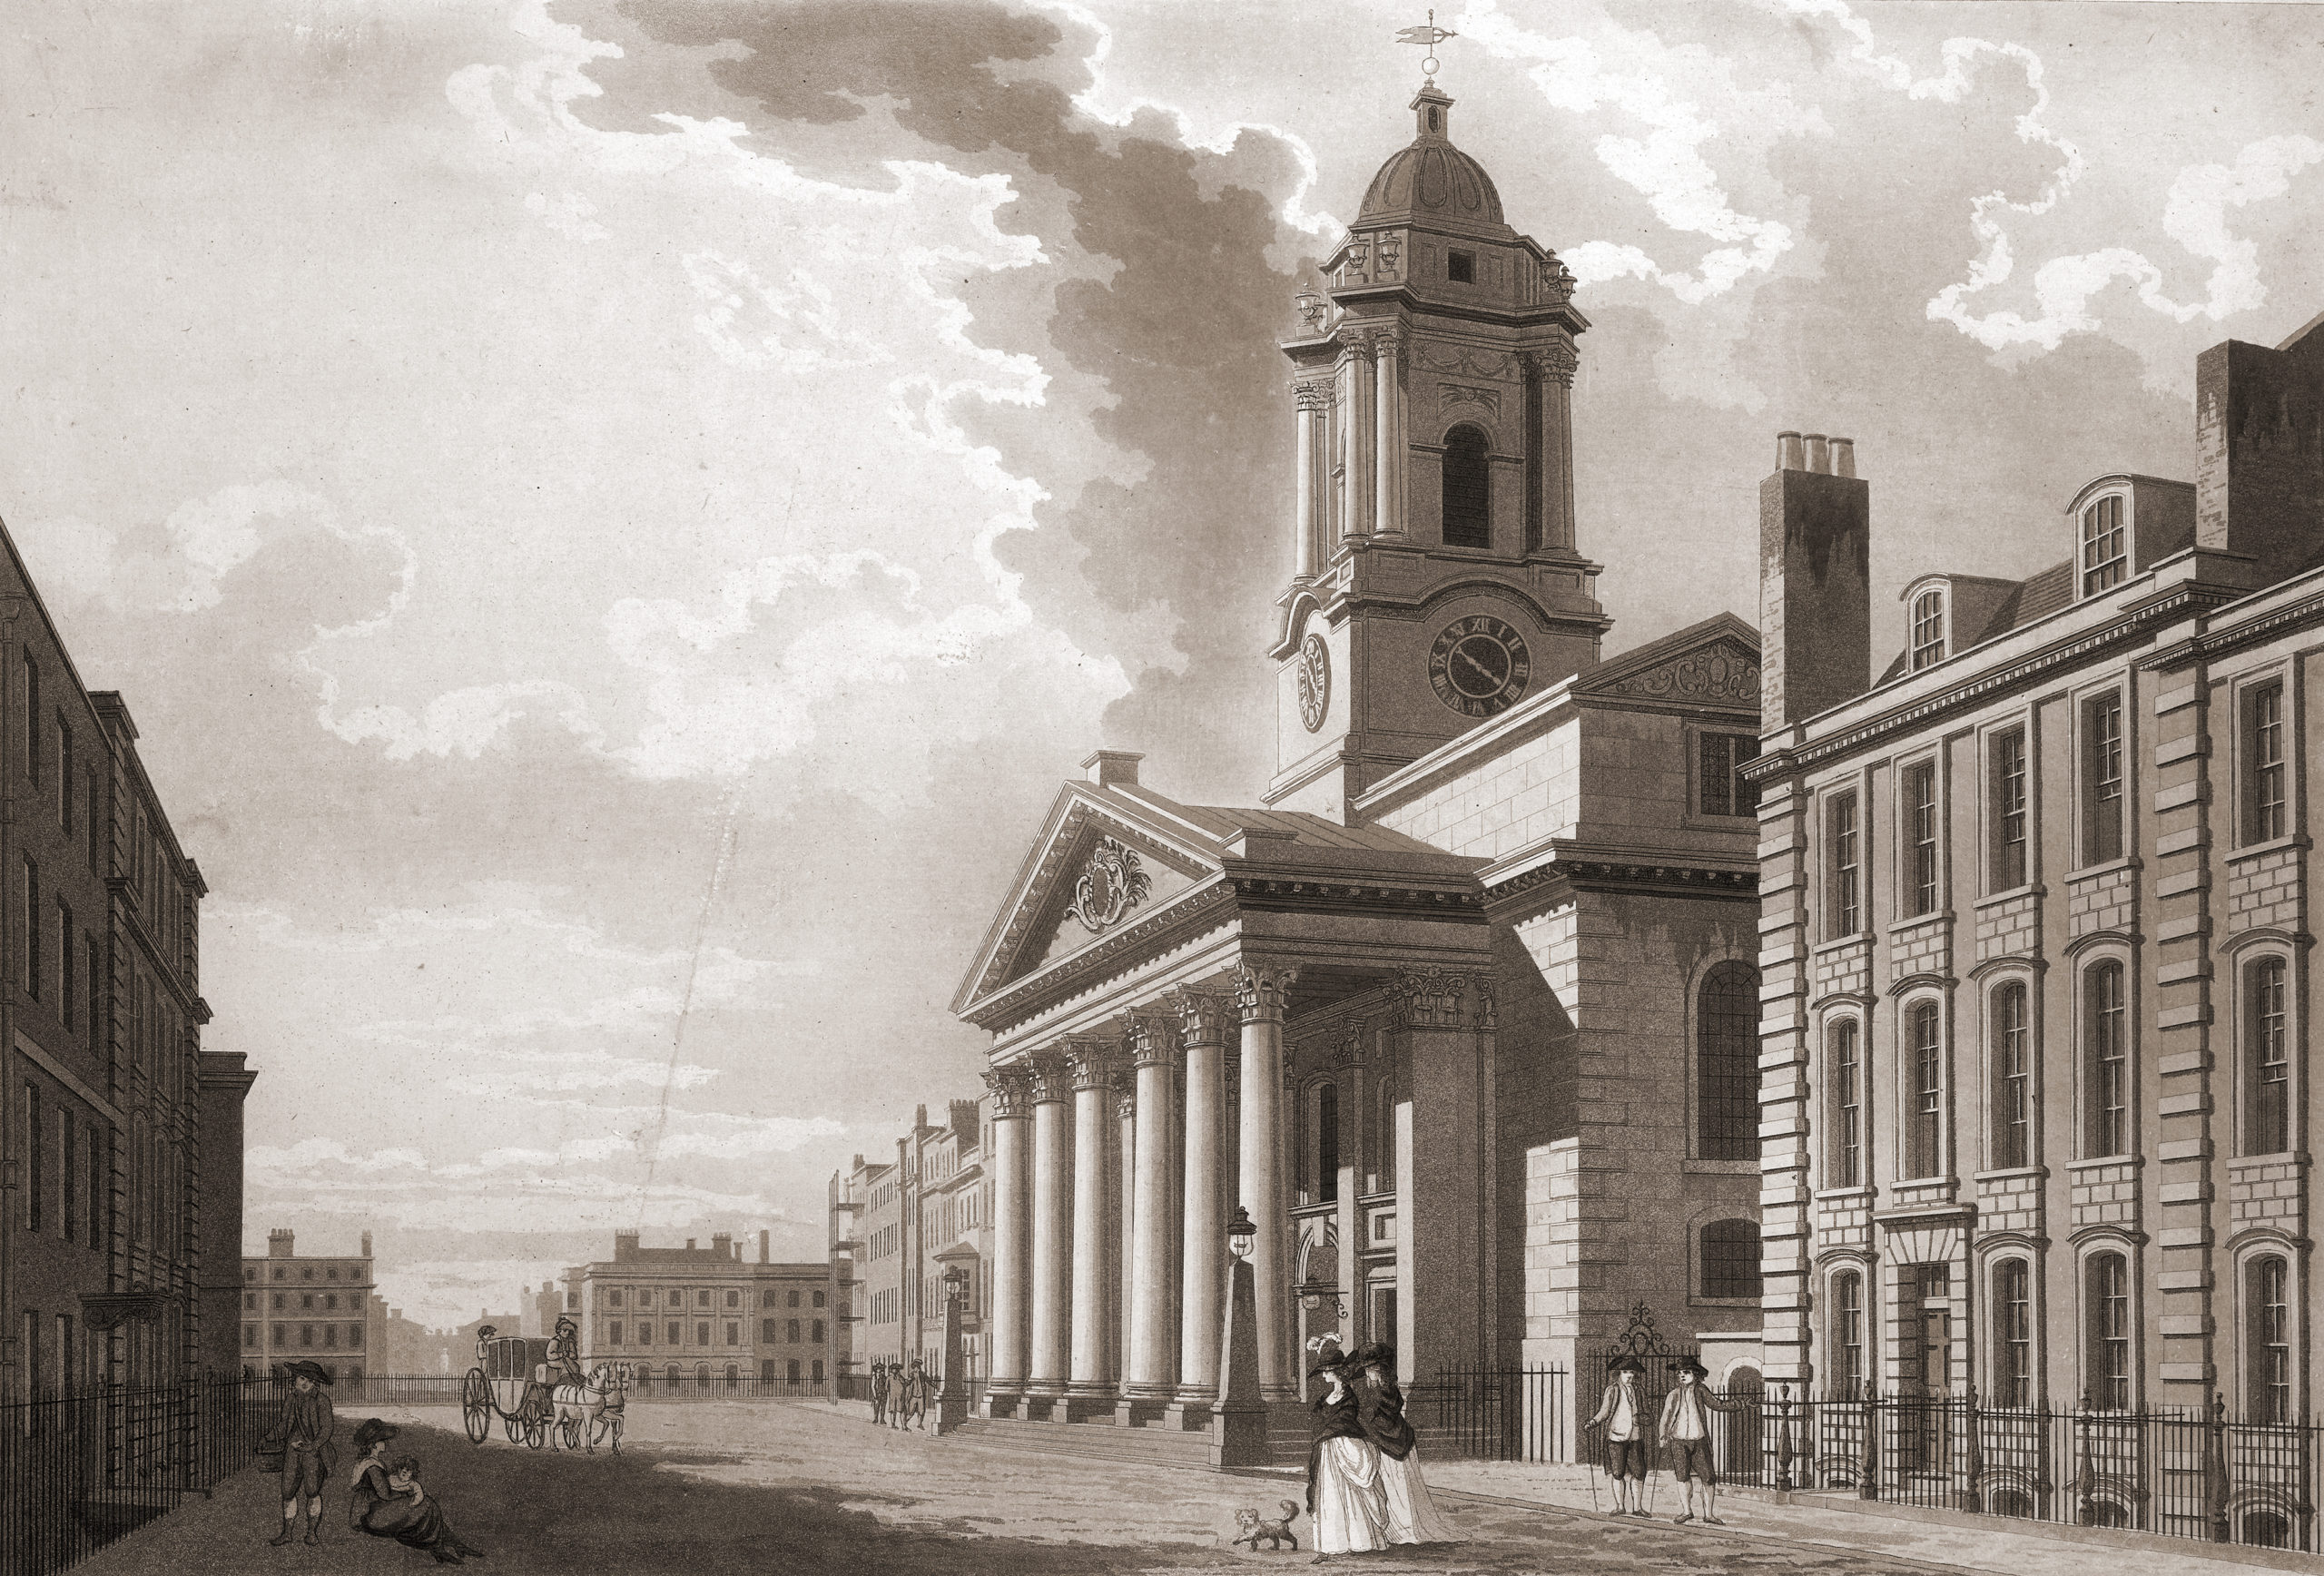 St George's, Hanover Square.